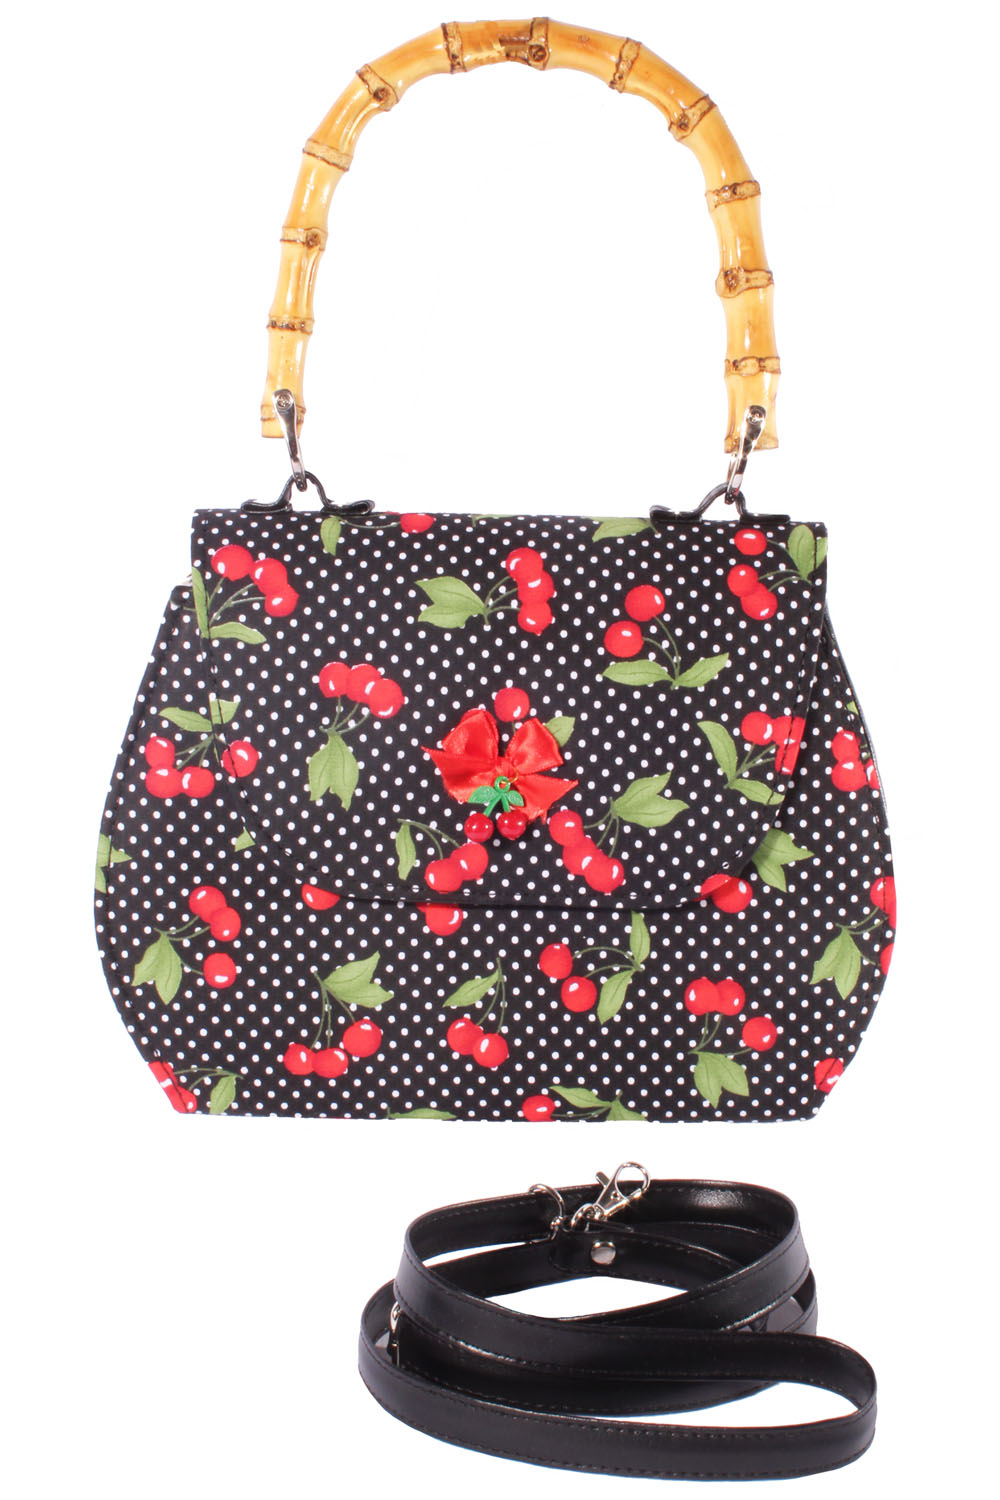 retro Cherry Polka Dots Rockabilly Kirschen Bambus Handtasche Köfferchen